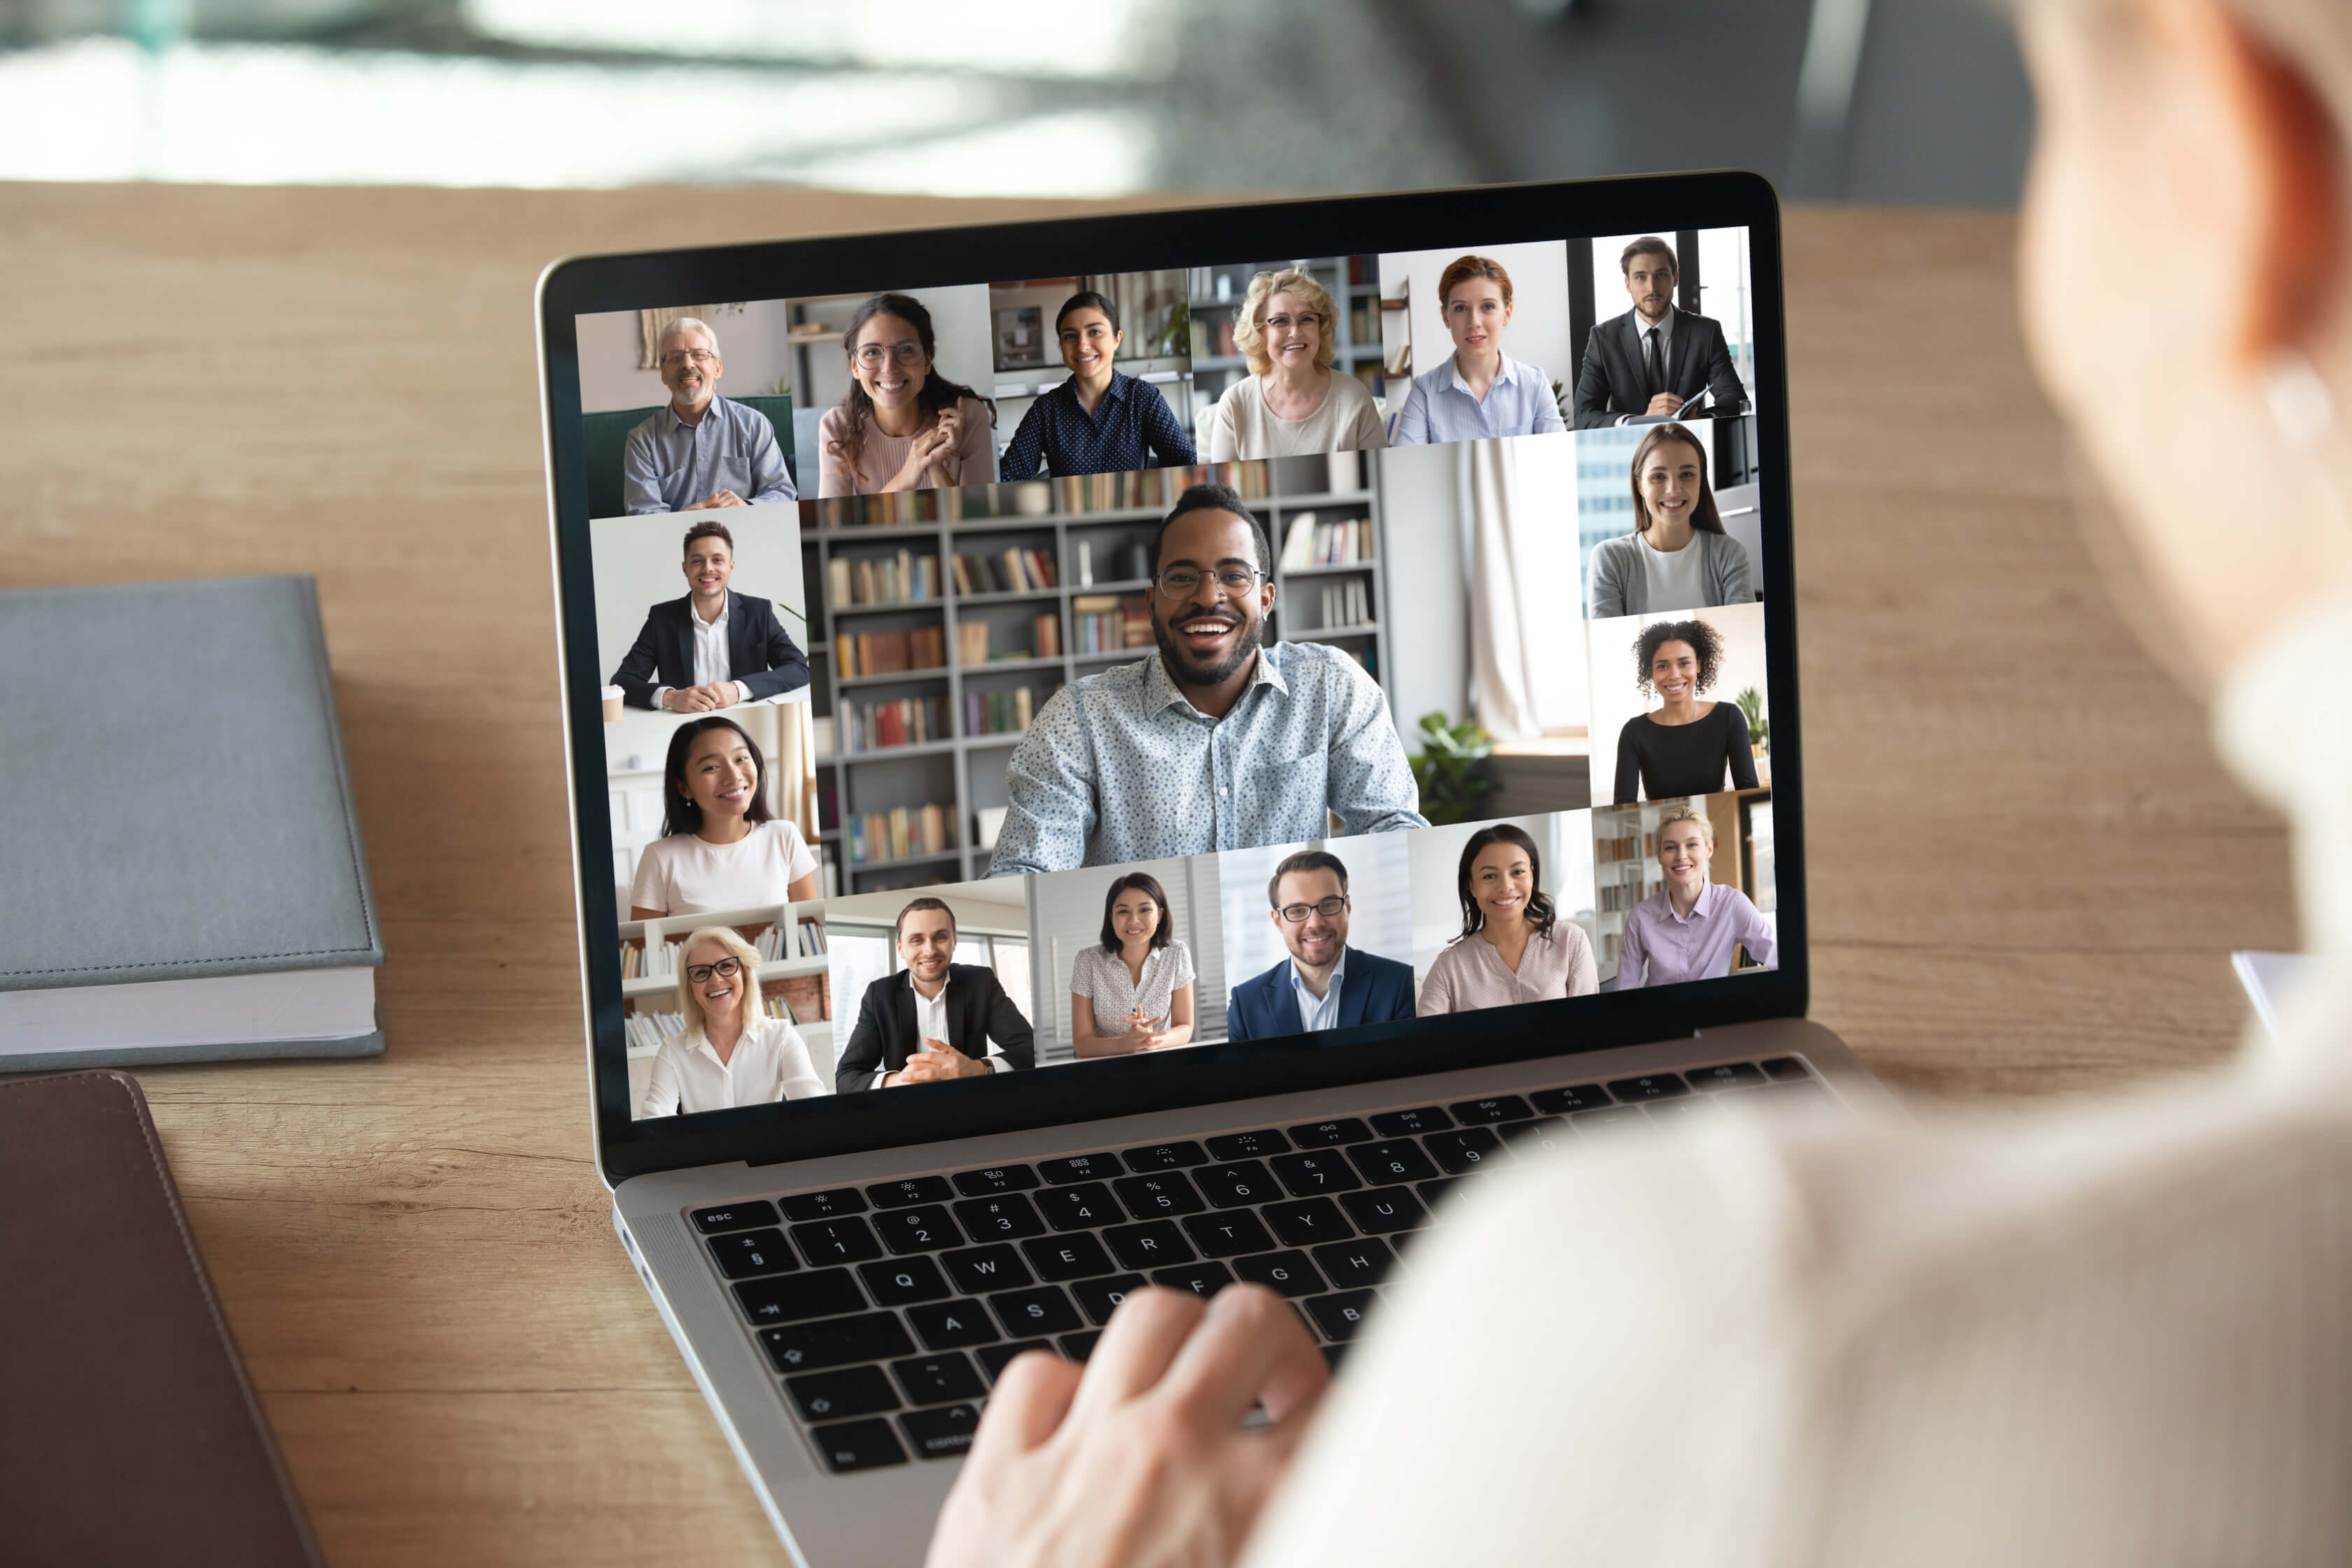 laptop shows members in a video conference